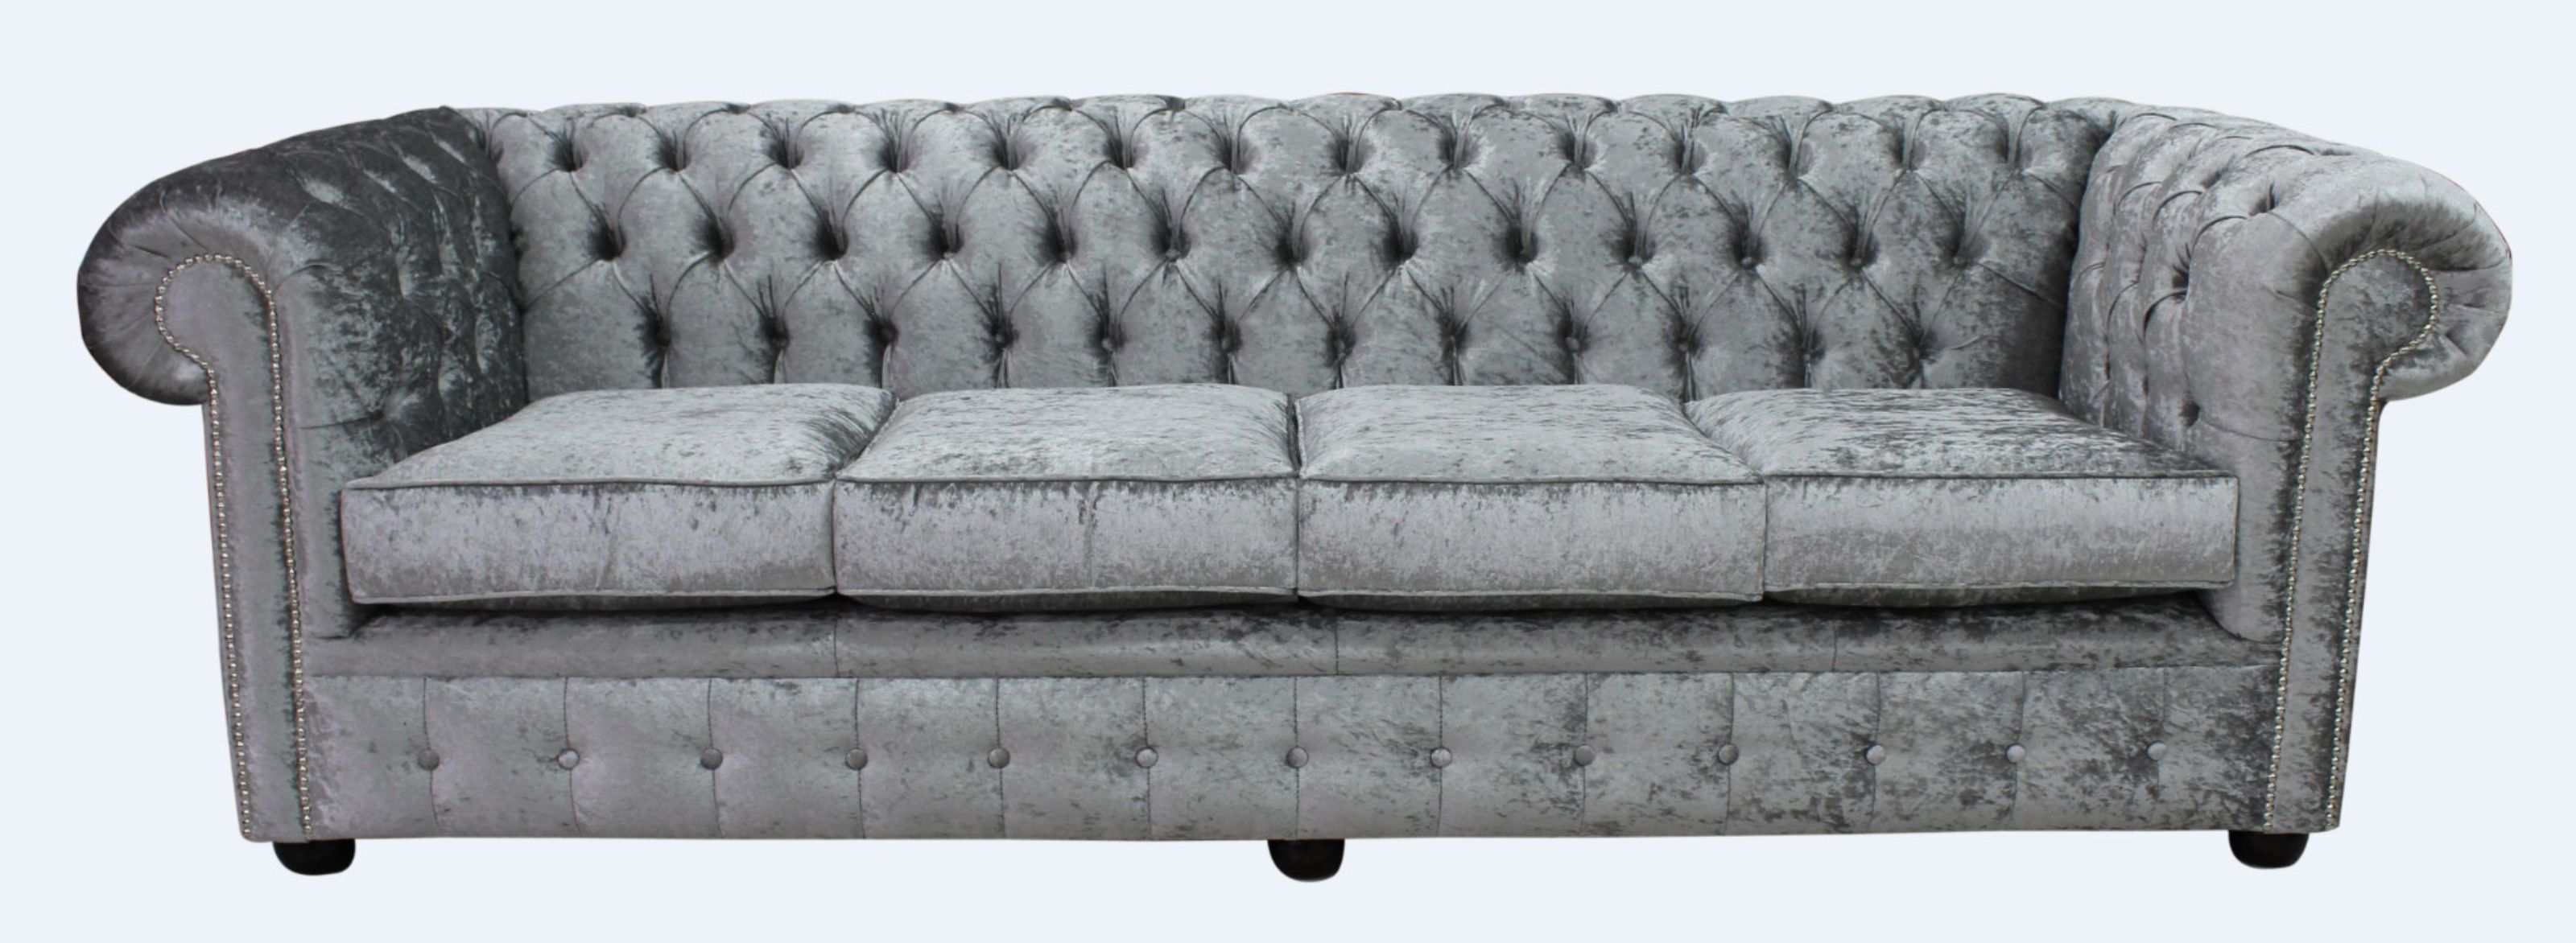 Phenomenal Large Silver Velvet Chesterfield Sofa Uk Designersofas4U Pabps2019 Chair Design Images Pabps2019Com